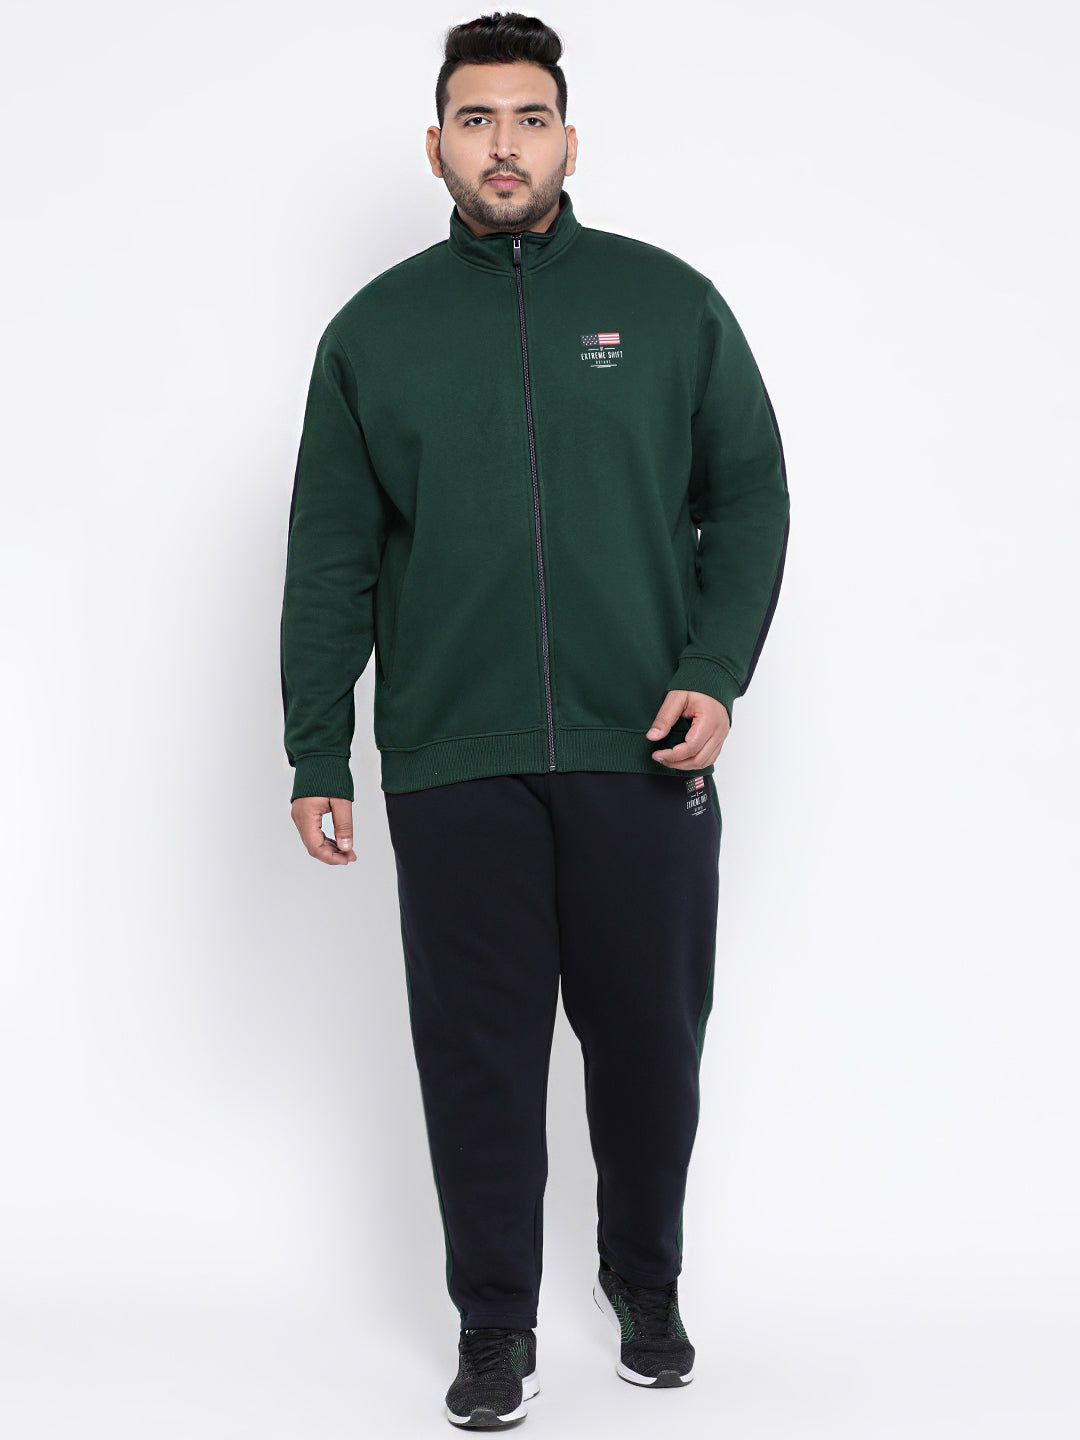 Octave Apparels Green-navy Jogging Suit for Men